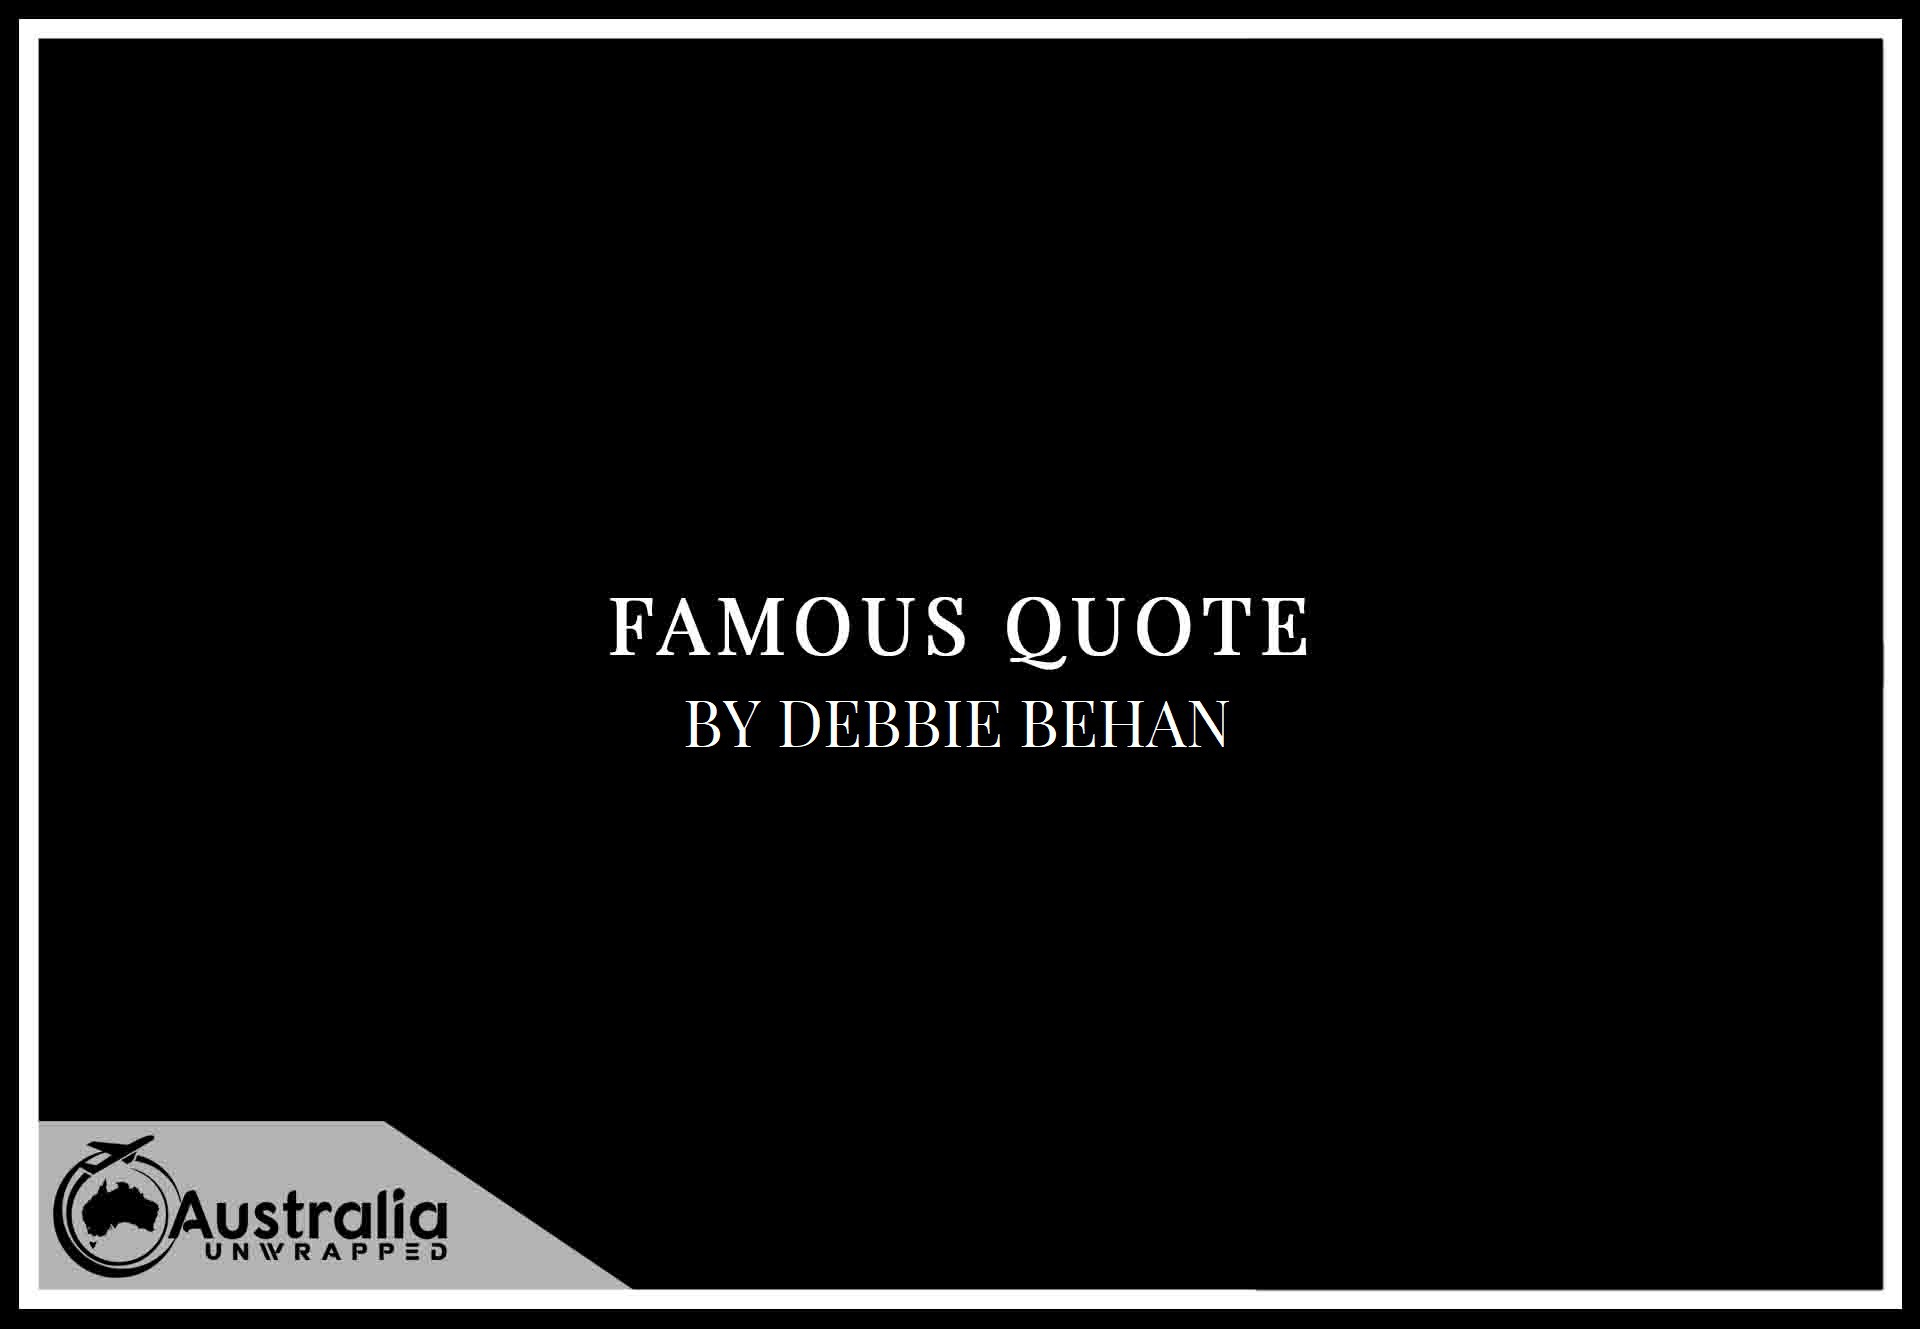 Top 1 Famous Quotes by Author Debbie Behan